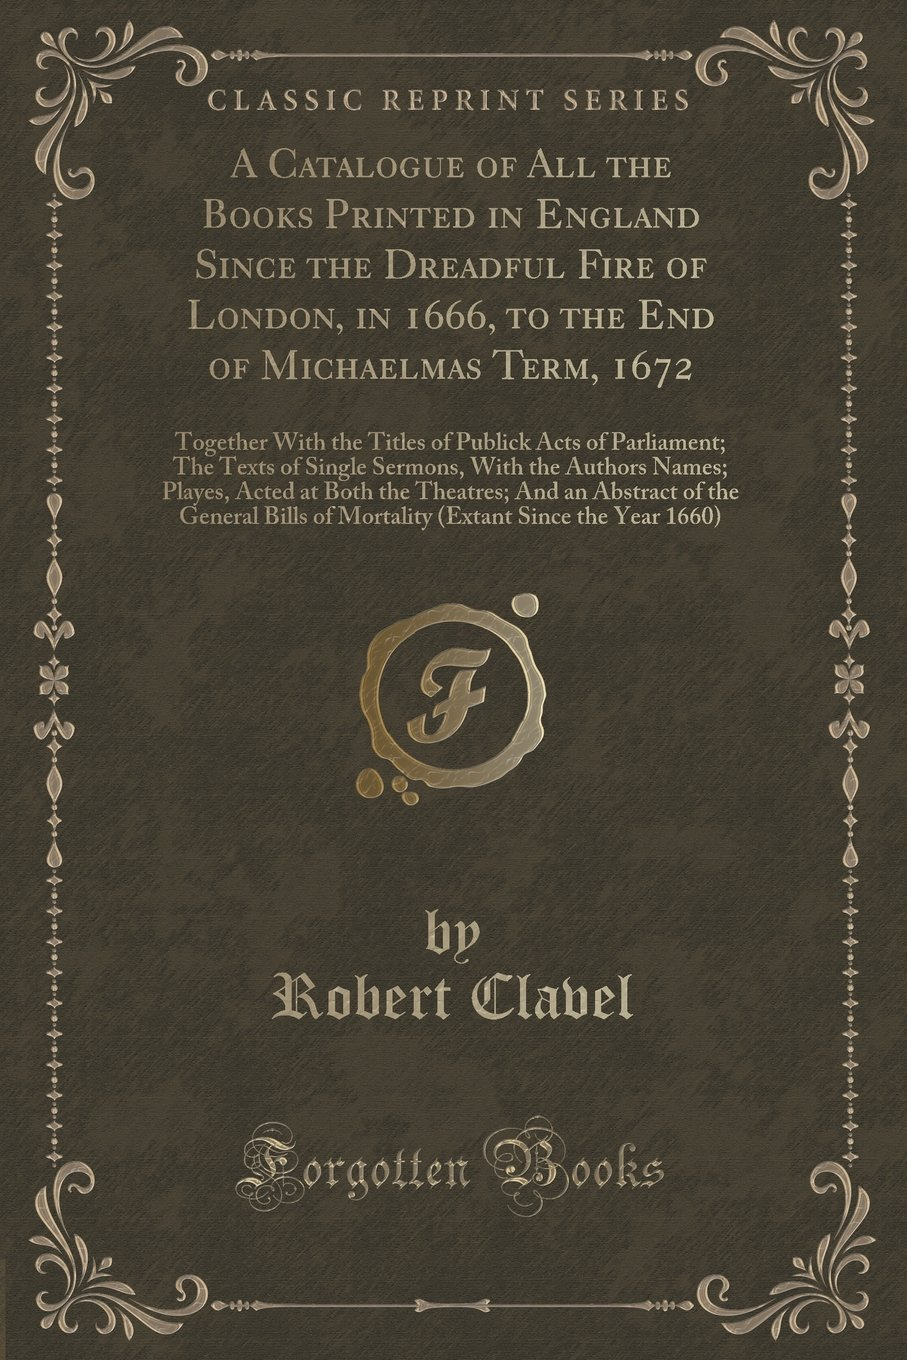 Download A Catalogue of All the Books Printed in England Since the Dreadful Fire of London, in 1666, to the End of Michaelmas Term, 1672: Together With the ... With the Authors Names; Playes, Acted at ebook